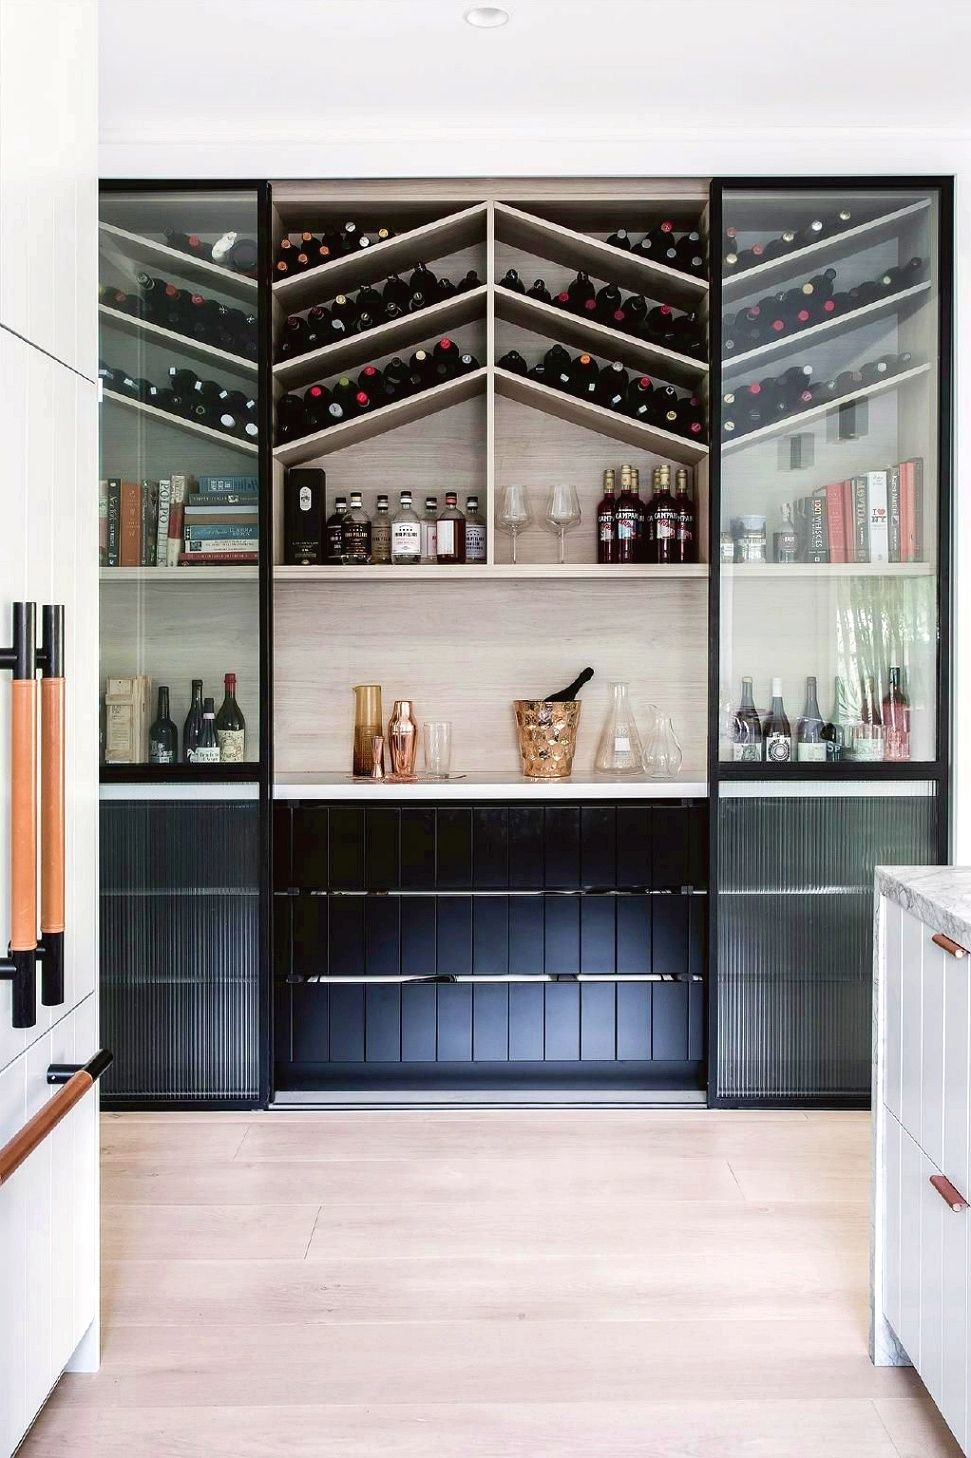 Basic kitchen cabinets  Kitchen decor guide A kitchen redesign can be as simple as